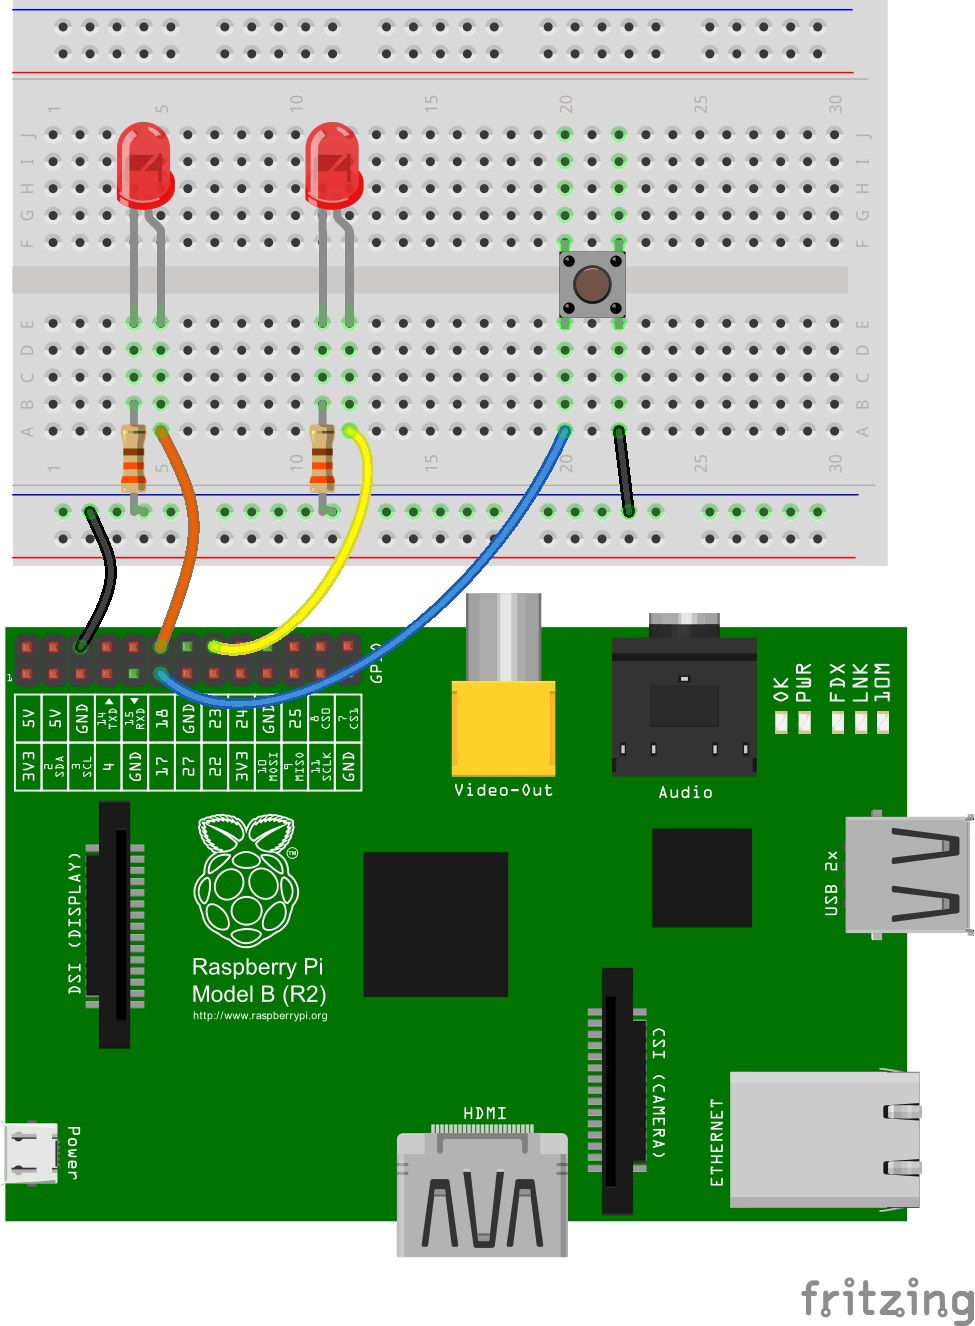 Raspberry Gpio Binary Code On Circuit Board Alt Text